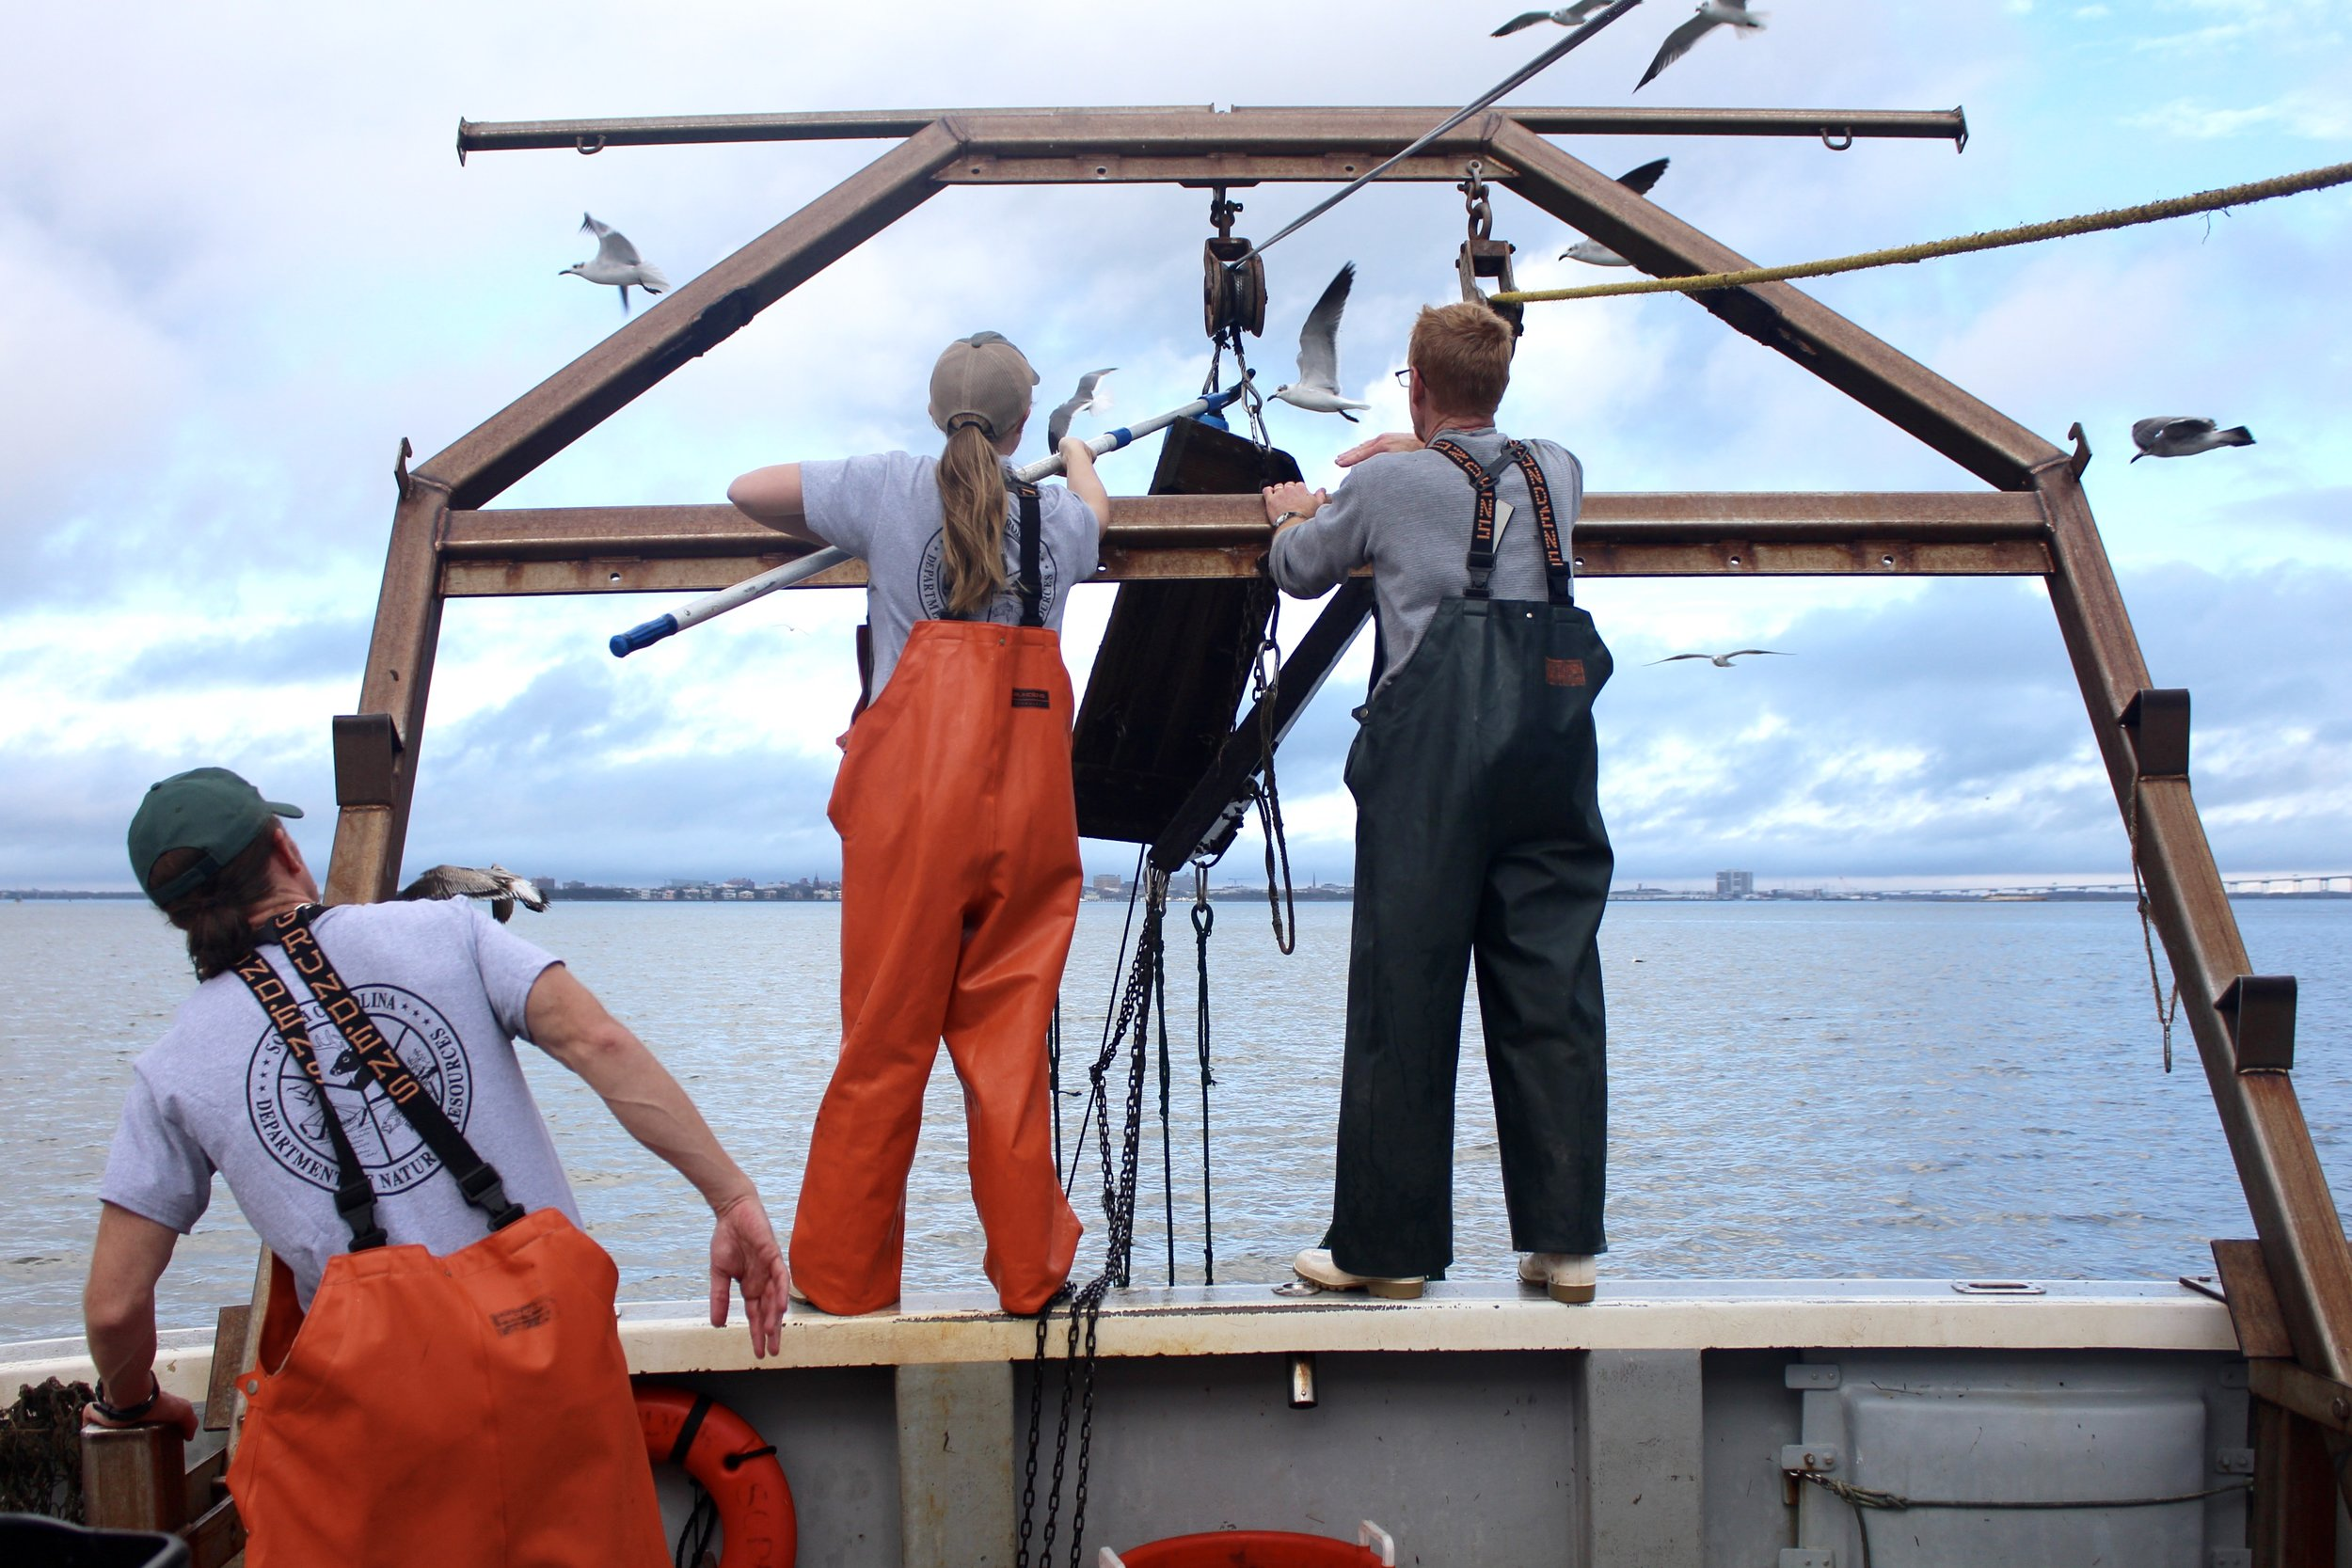 Elizabeth Gooding and Jeff Brunson carefully untangle the net their team uses to catch and study crustaceans in major waterways along the coast. Their white shrimp boats provide good traction on wet/slimy surfaces. (Photo: E. Weeks/SCDNR)